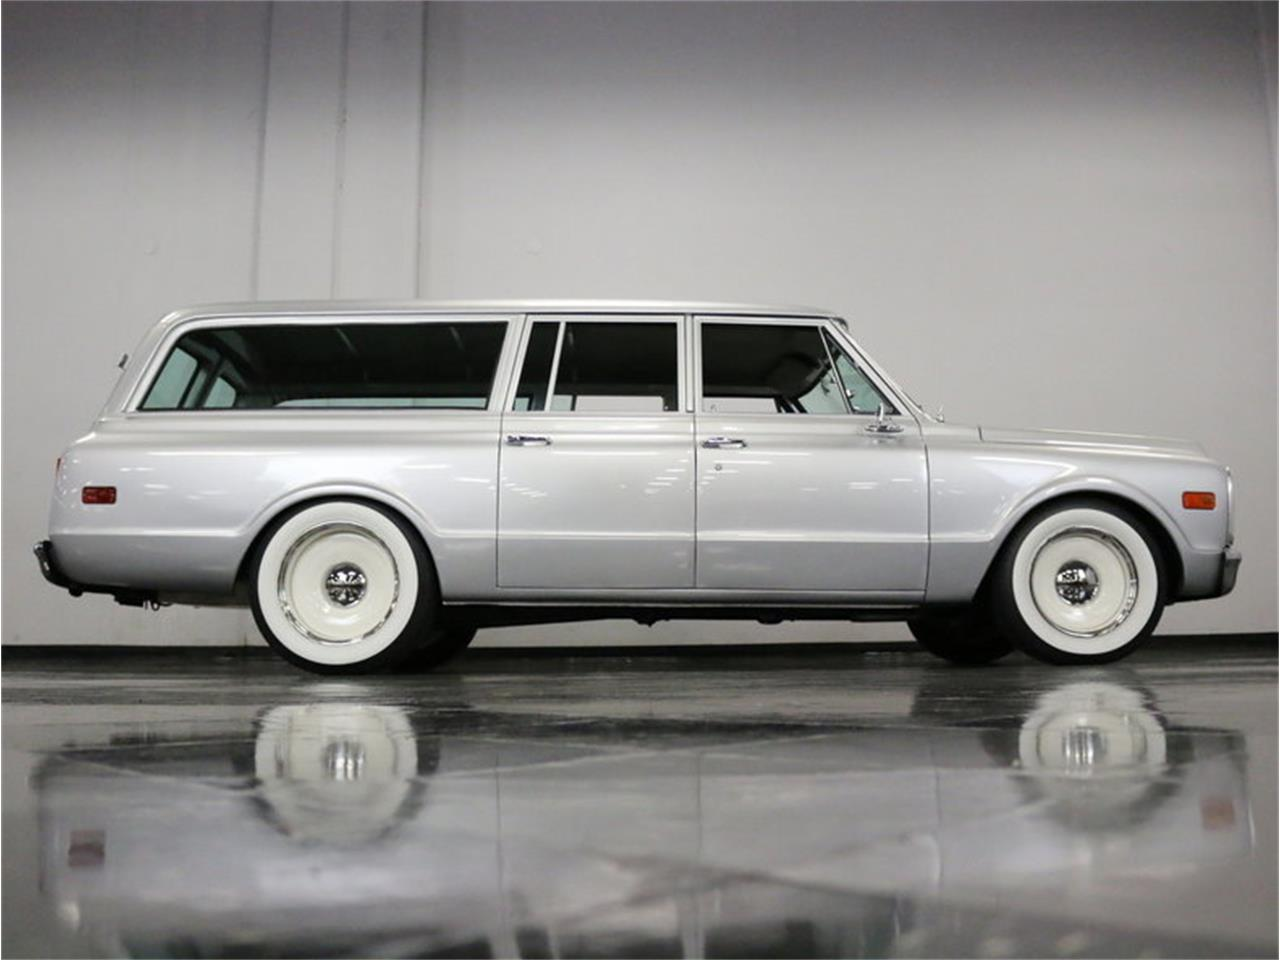 Large Picture of 1971 GMC Suburban located in Ft Worth Texas - $42,995.00 Offered by Streetside Classics - Dallas / Fort Worth - MOA7